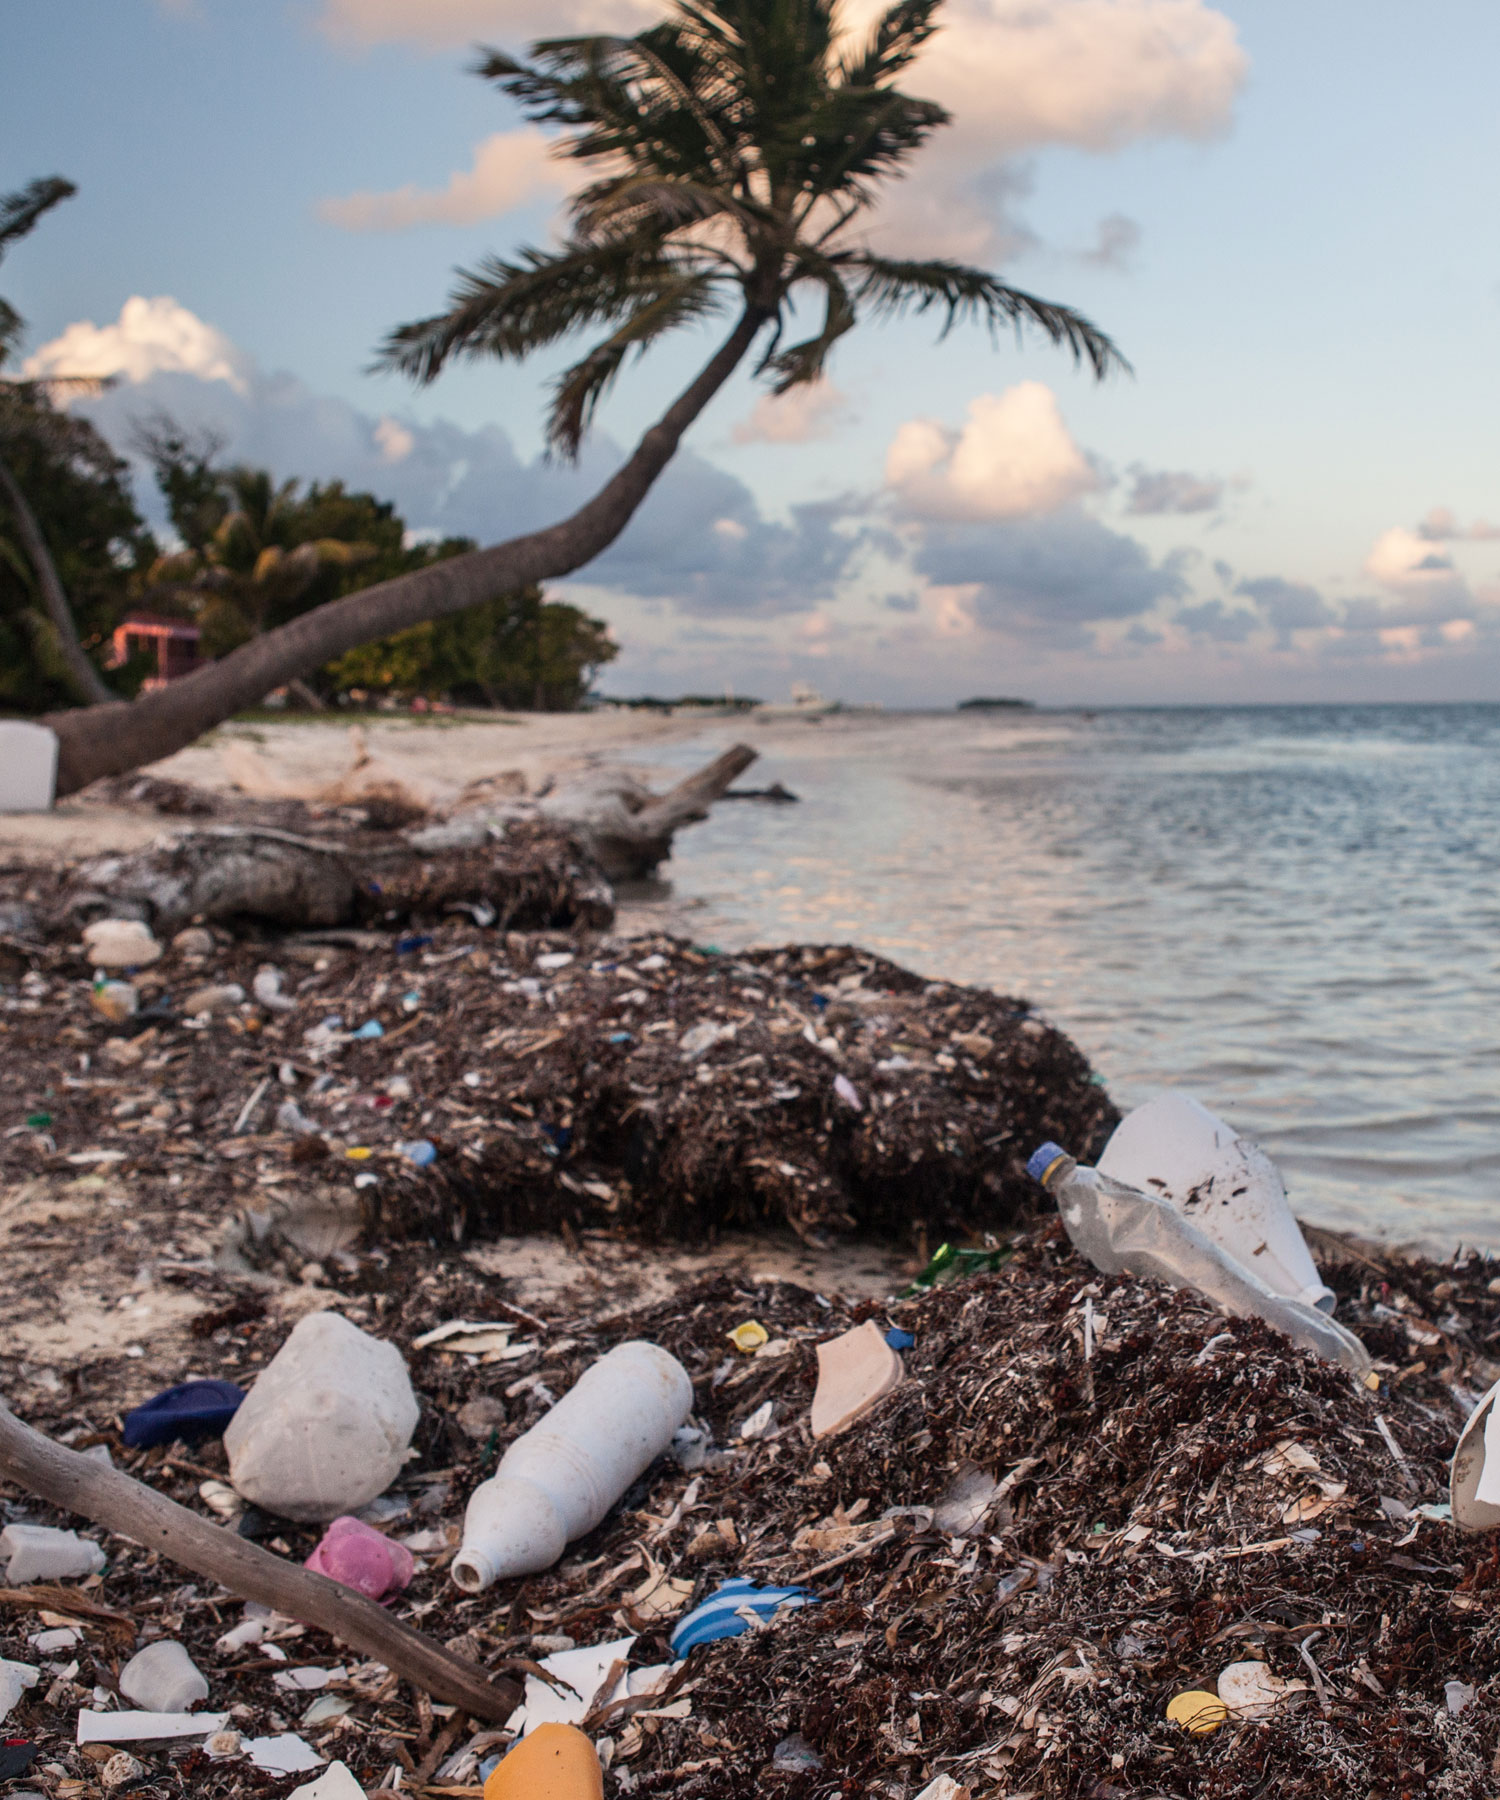 - It's estimated that almost 400 million tonnes of plastic is produced across the globe each year – 8 million tonnes finds its way into our oceans, and only 10% of it is captured and recycled.